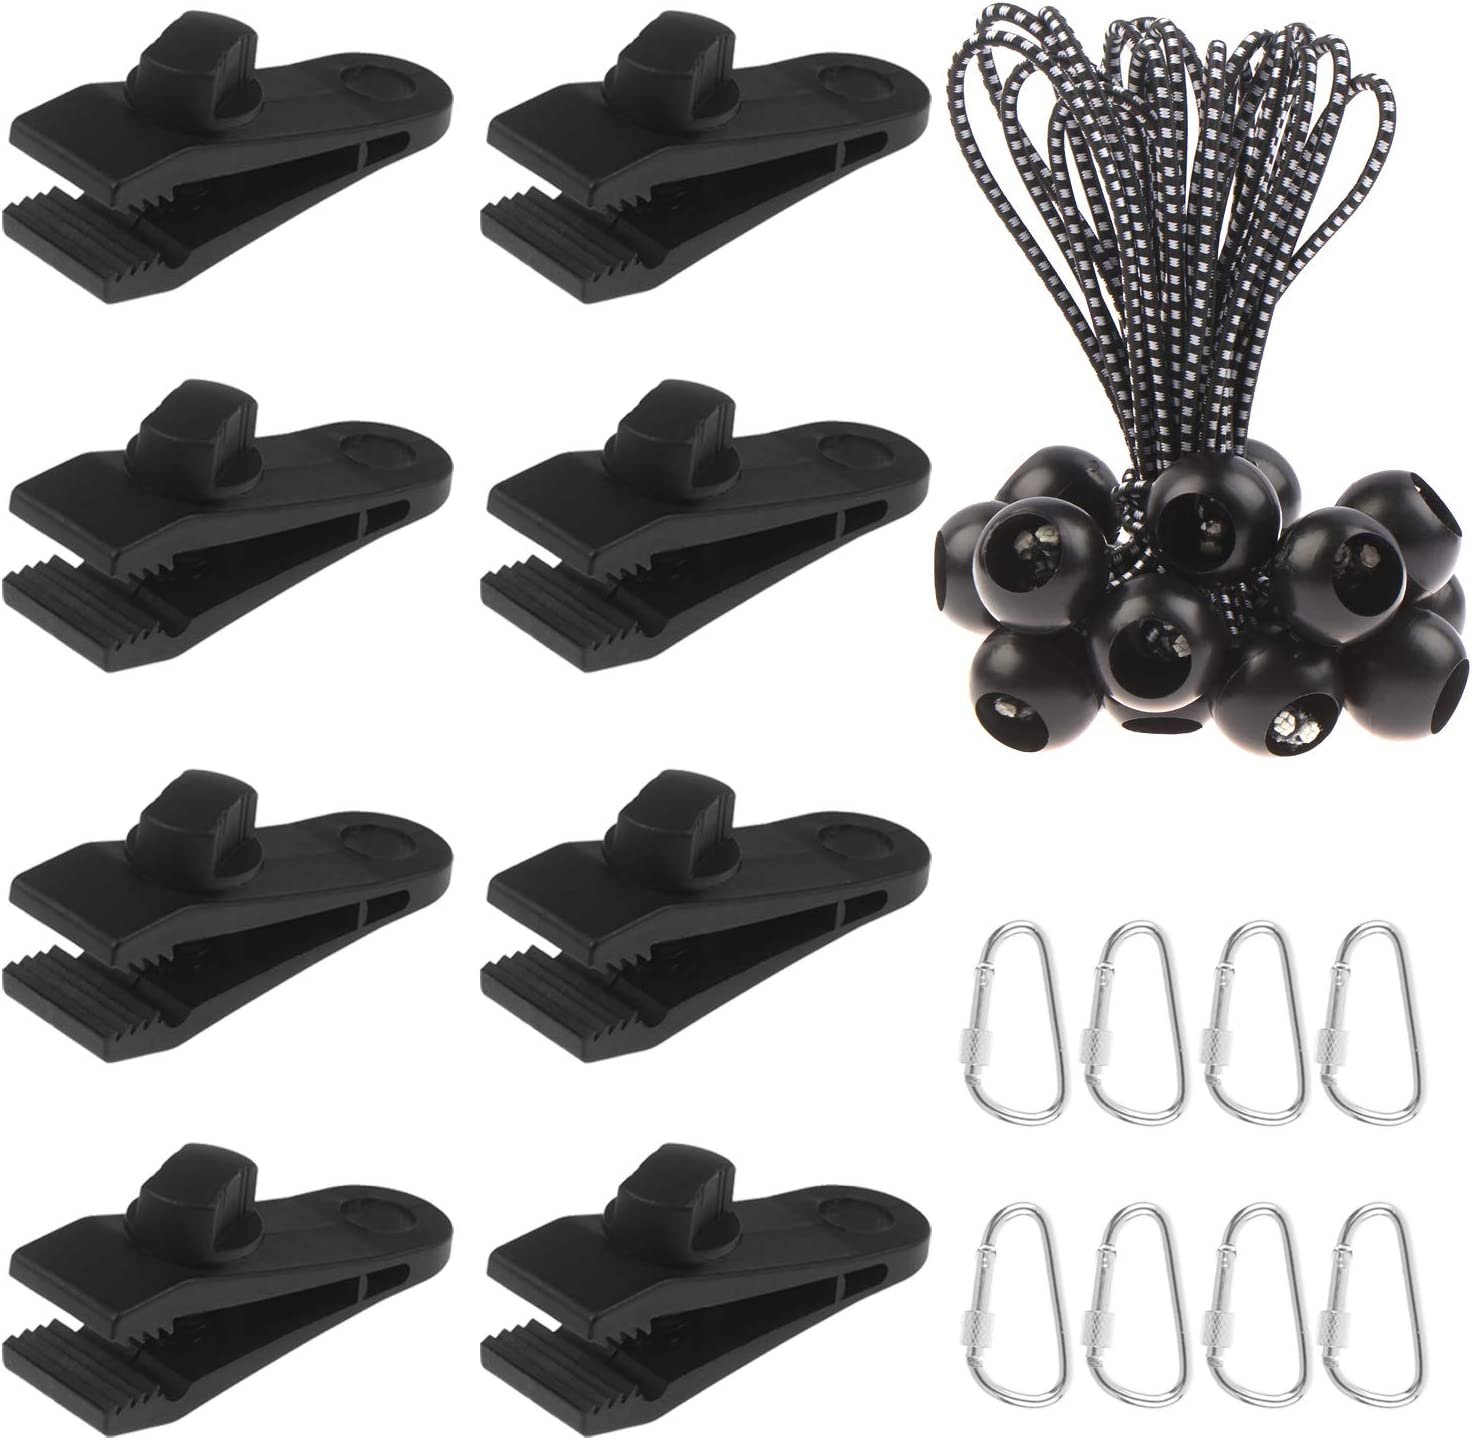 Ioffersuper 8pcs Lock Grip Clamps /& 8pcs Buckle /& 8 Pack Bungee Cord Bungee Balls Tools of Tent Instrument for Outdoors Camping Farming Garden Tarps